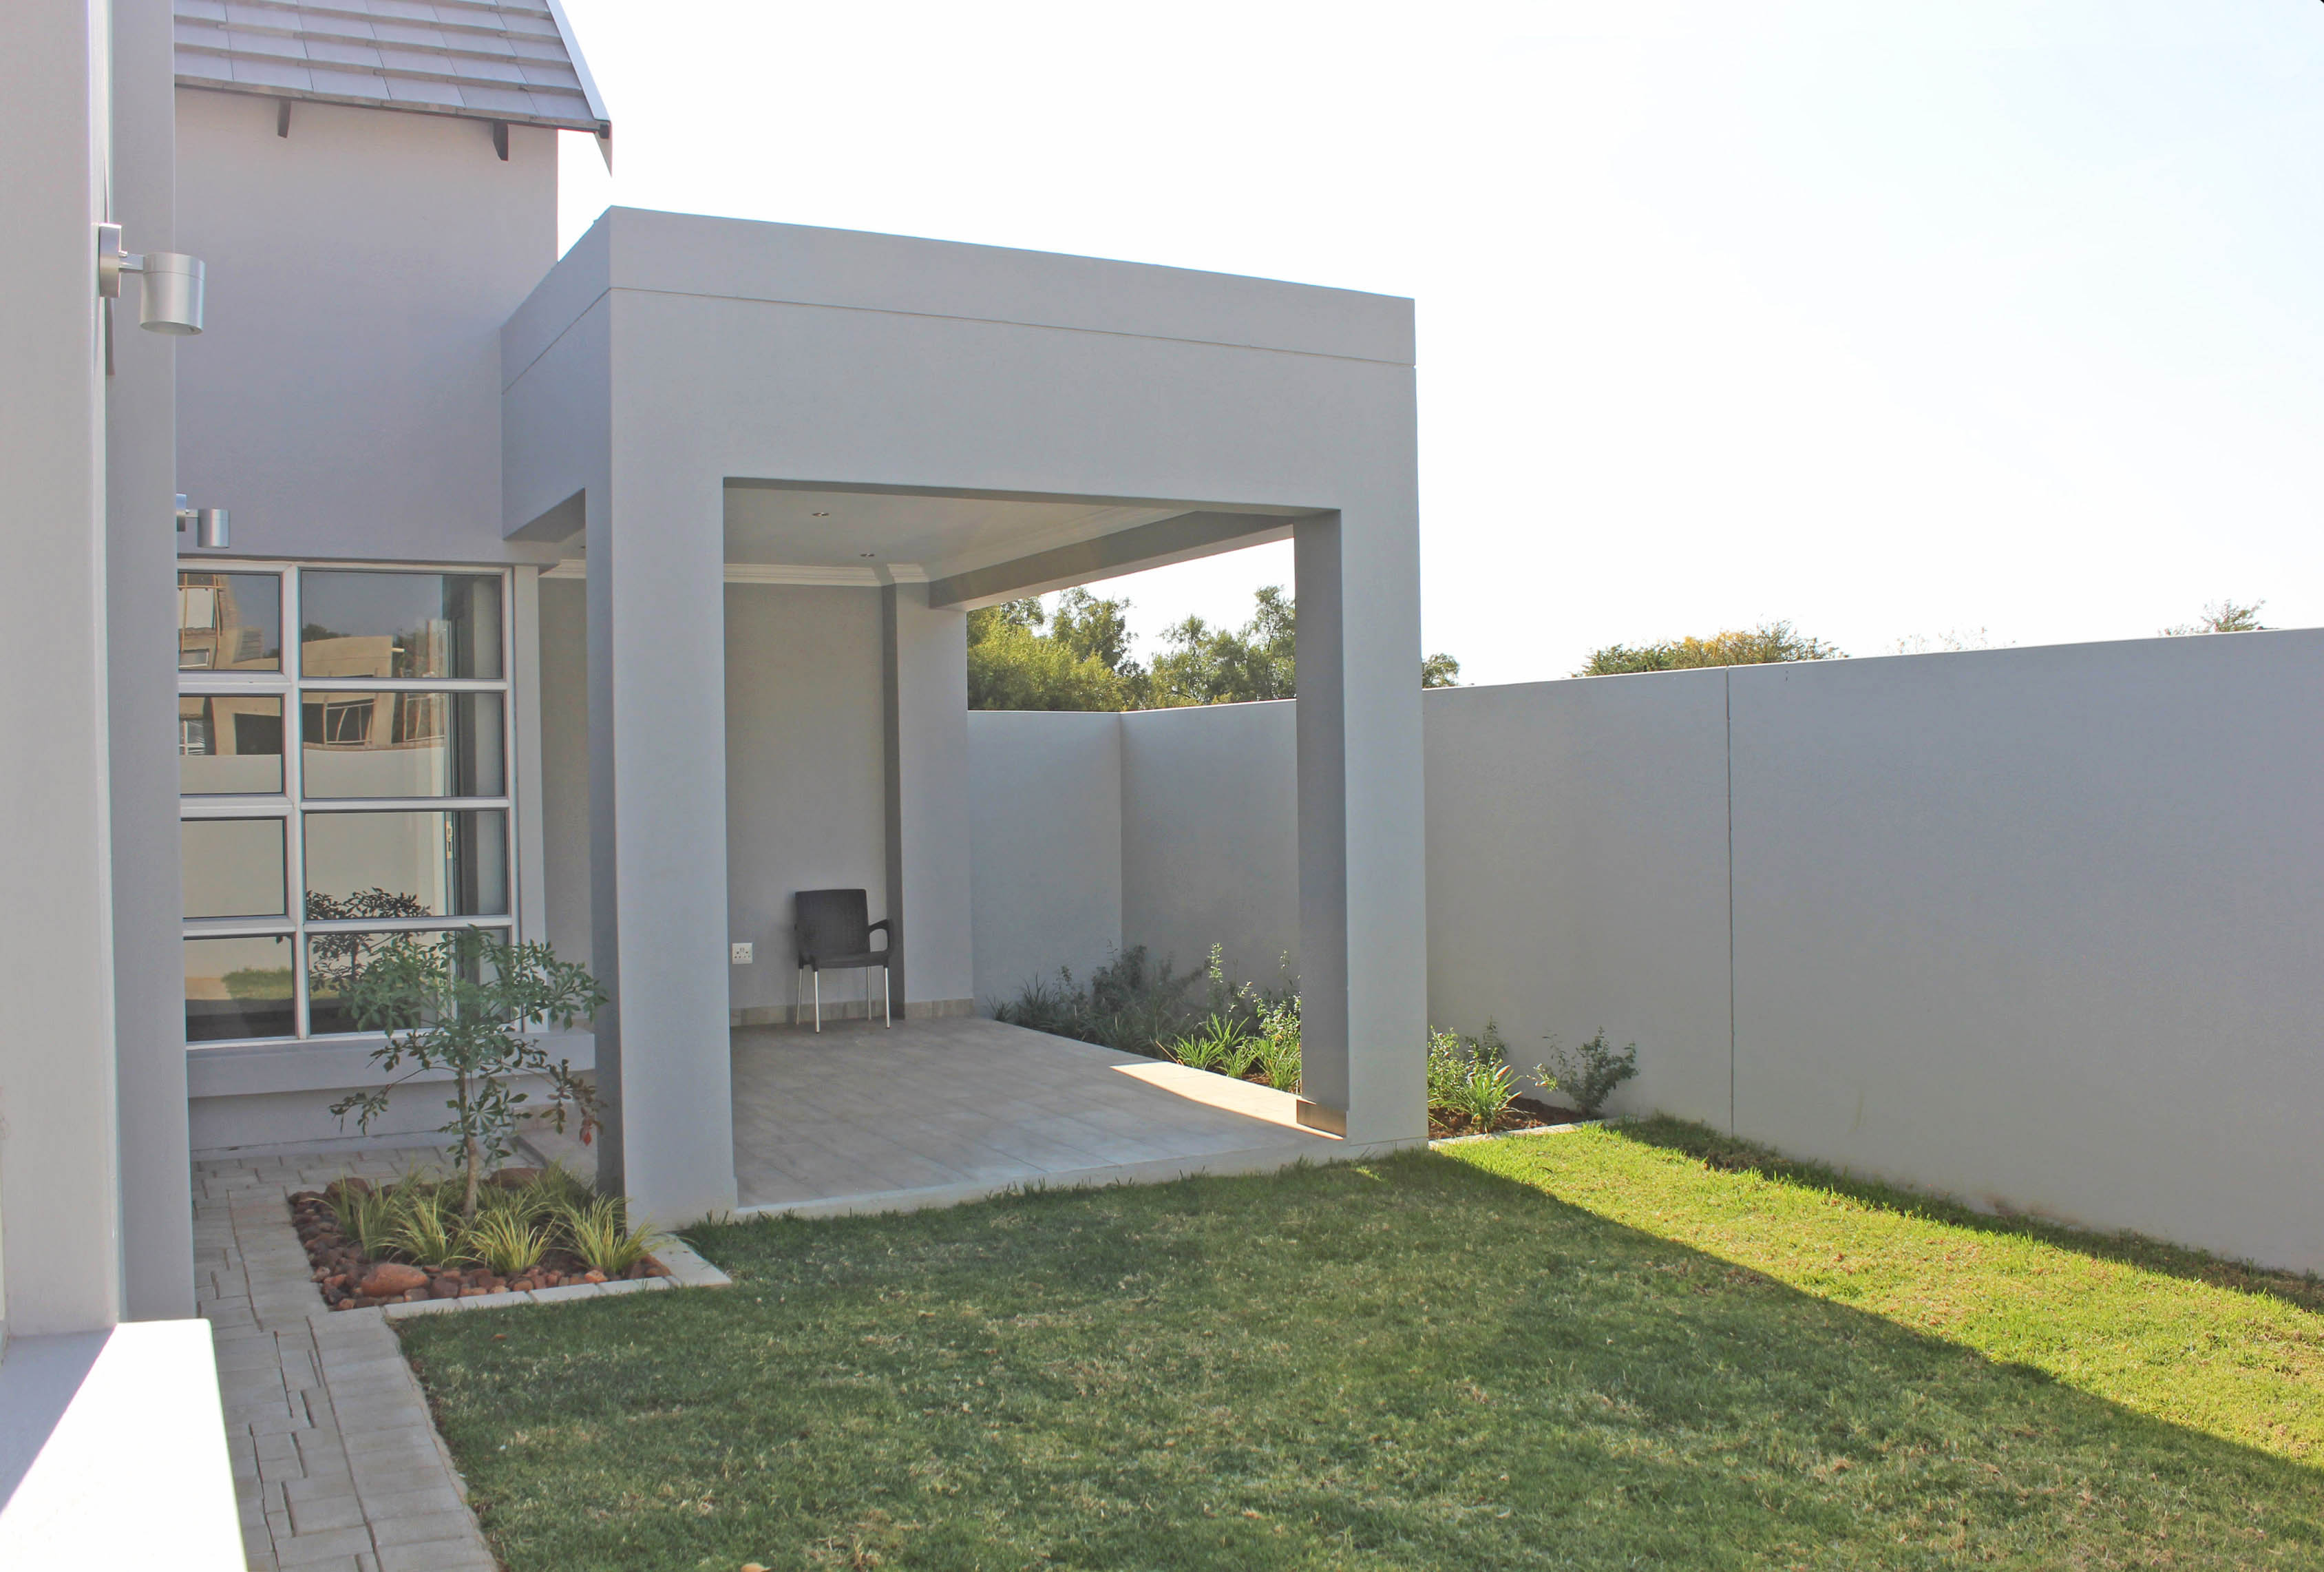 3 Bedroom Townhouse for sale in North Riding ENT0075308 : photo#0